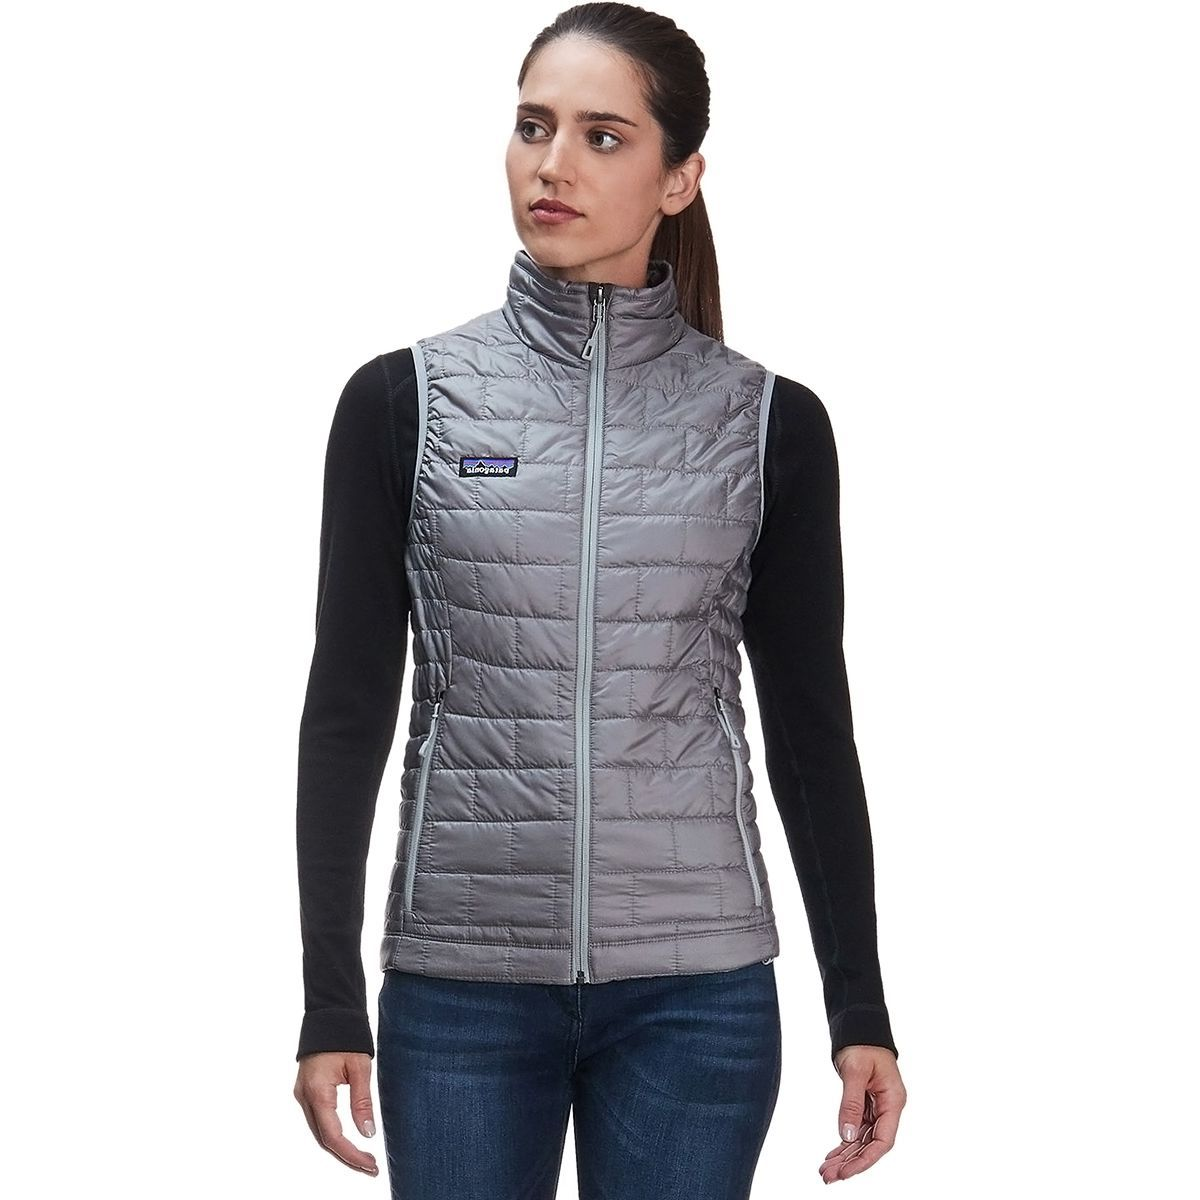 Patagonia Nano Puff Insulated Vest - Women's